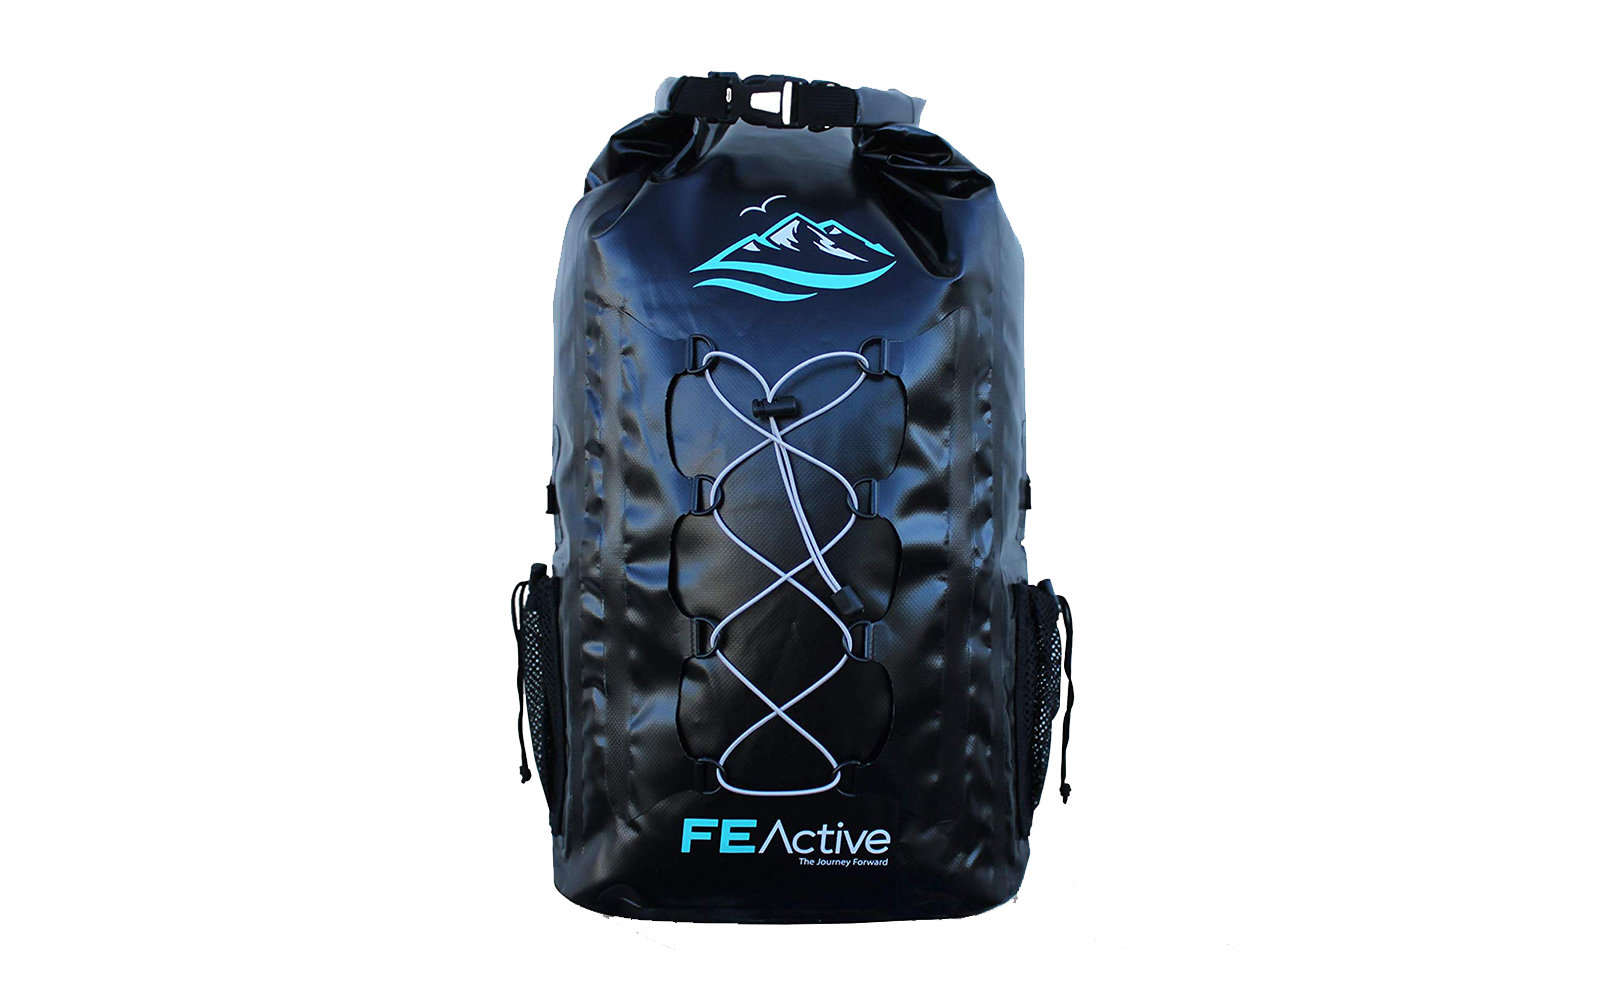 f630c2e9f6587 The Best Waterproof Travel Backpacks in 2019